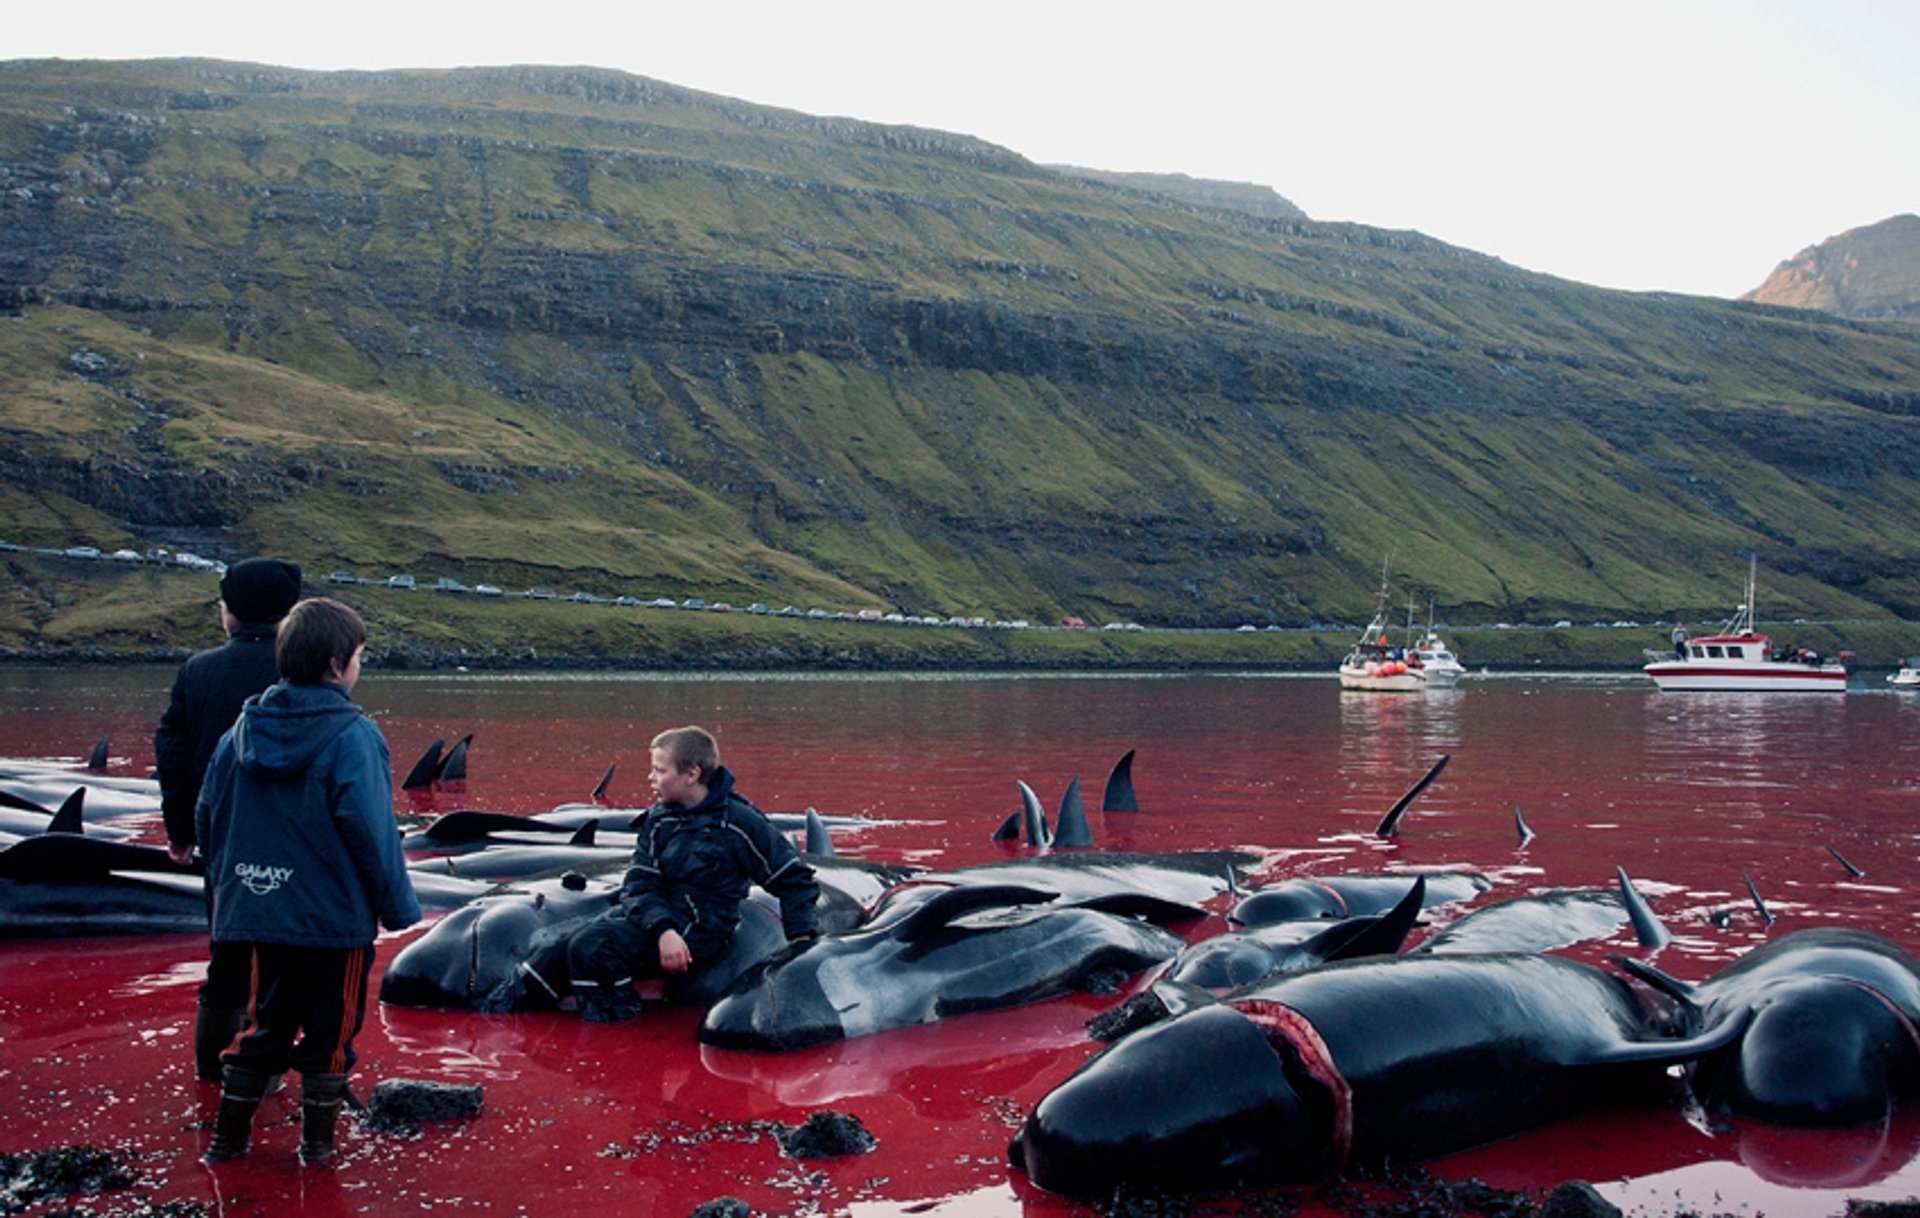 Tradition or Savagery? Grindadráp! in Faroe Islands 2019 - Best Time